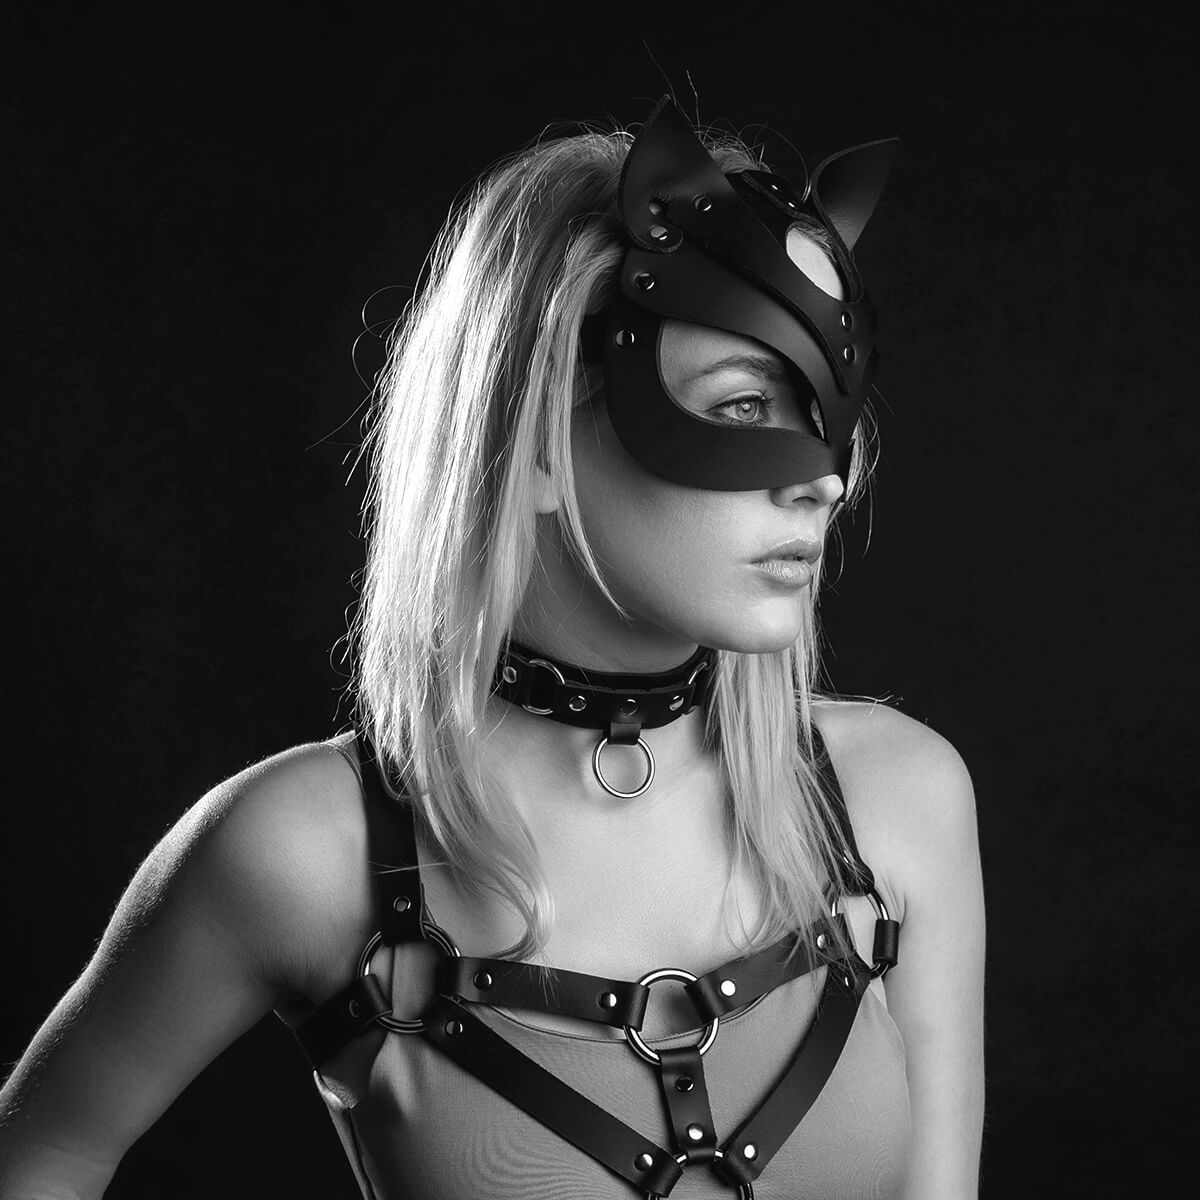 Young lady with Kitty mask, choker and harness.